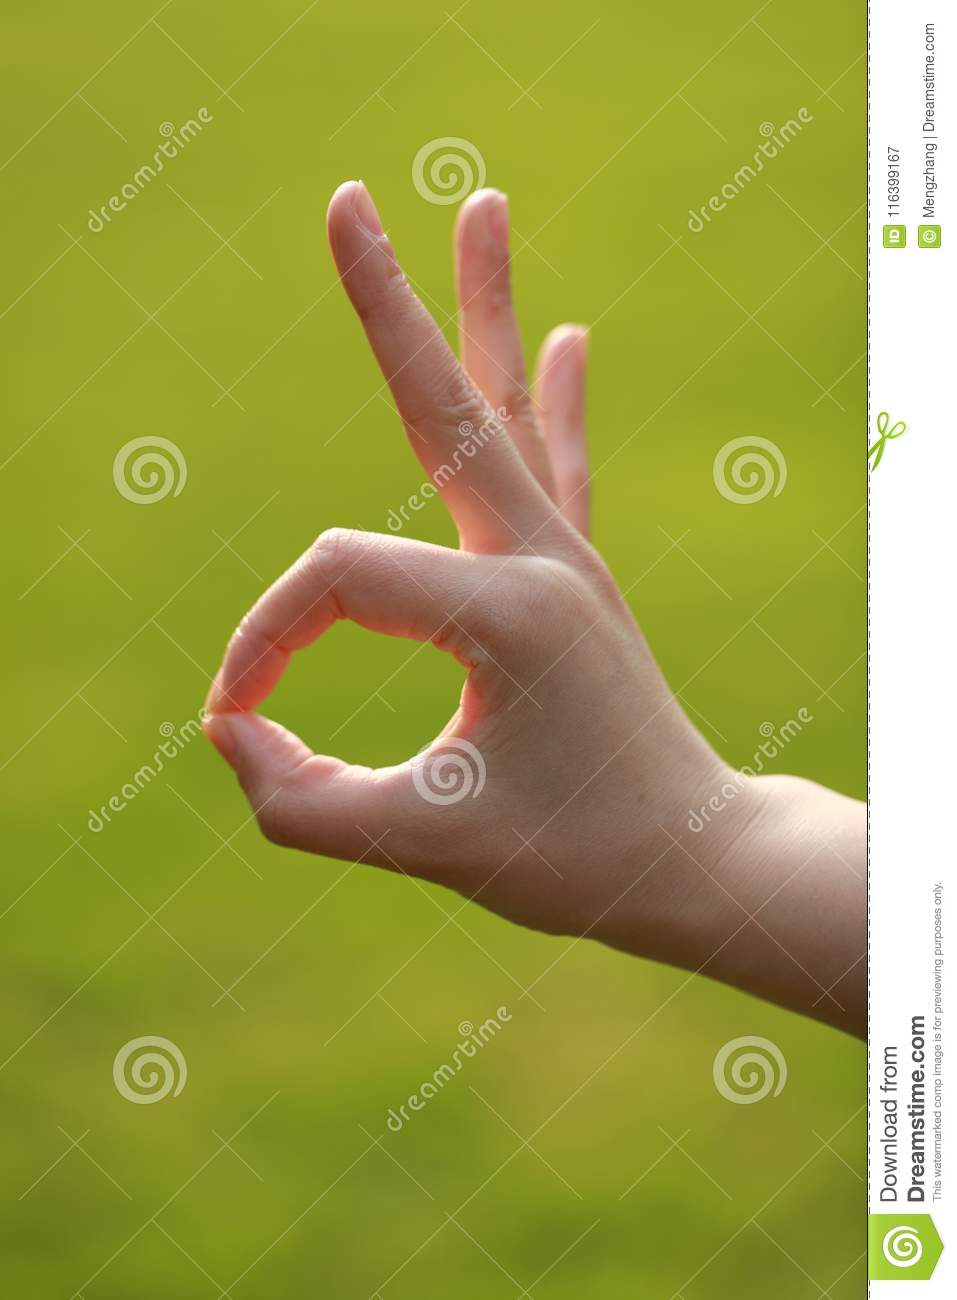 How To Say Good Job In Sign Language : language, Grass,, Woman, Agreement, Stock, Image, Thump,, Filed:, 116399167